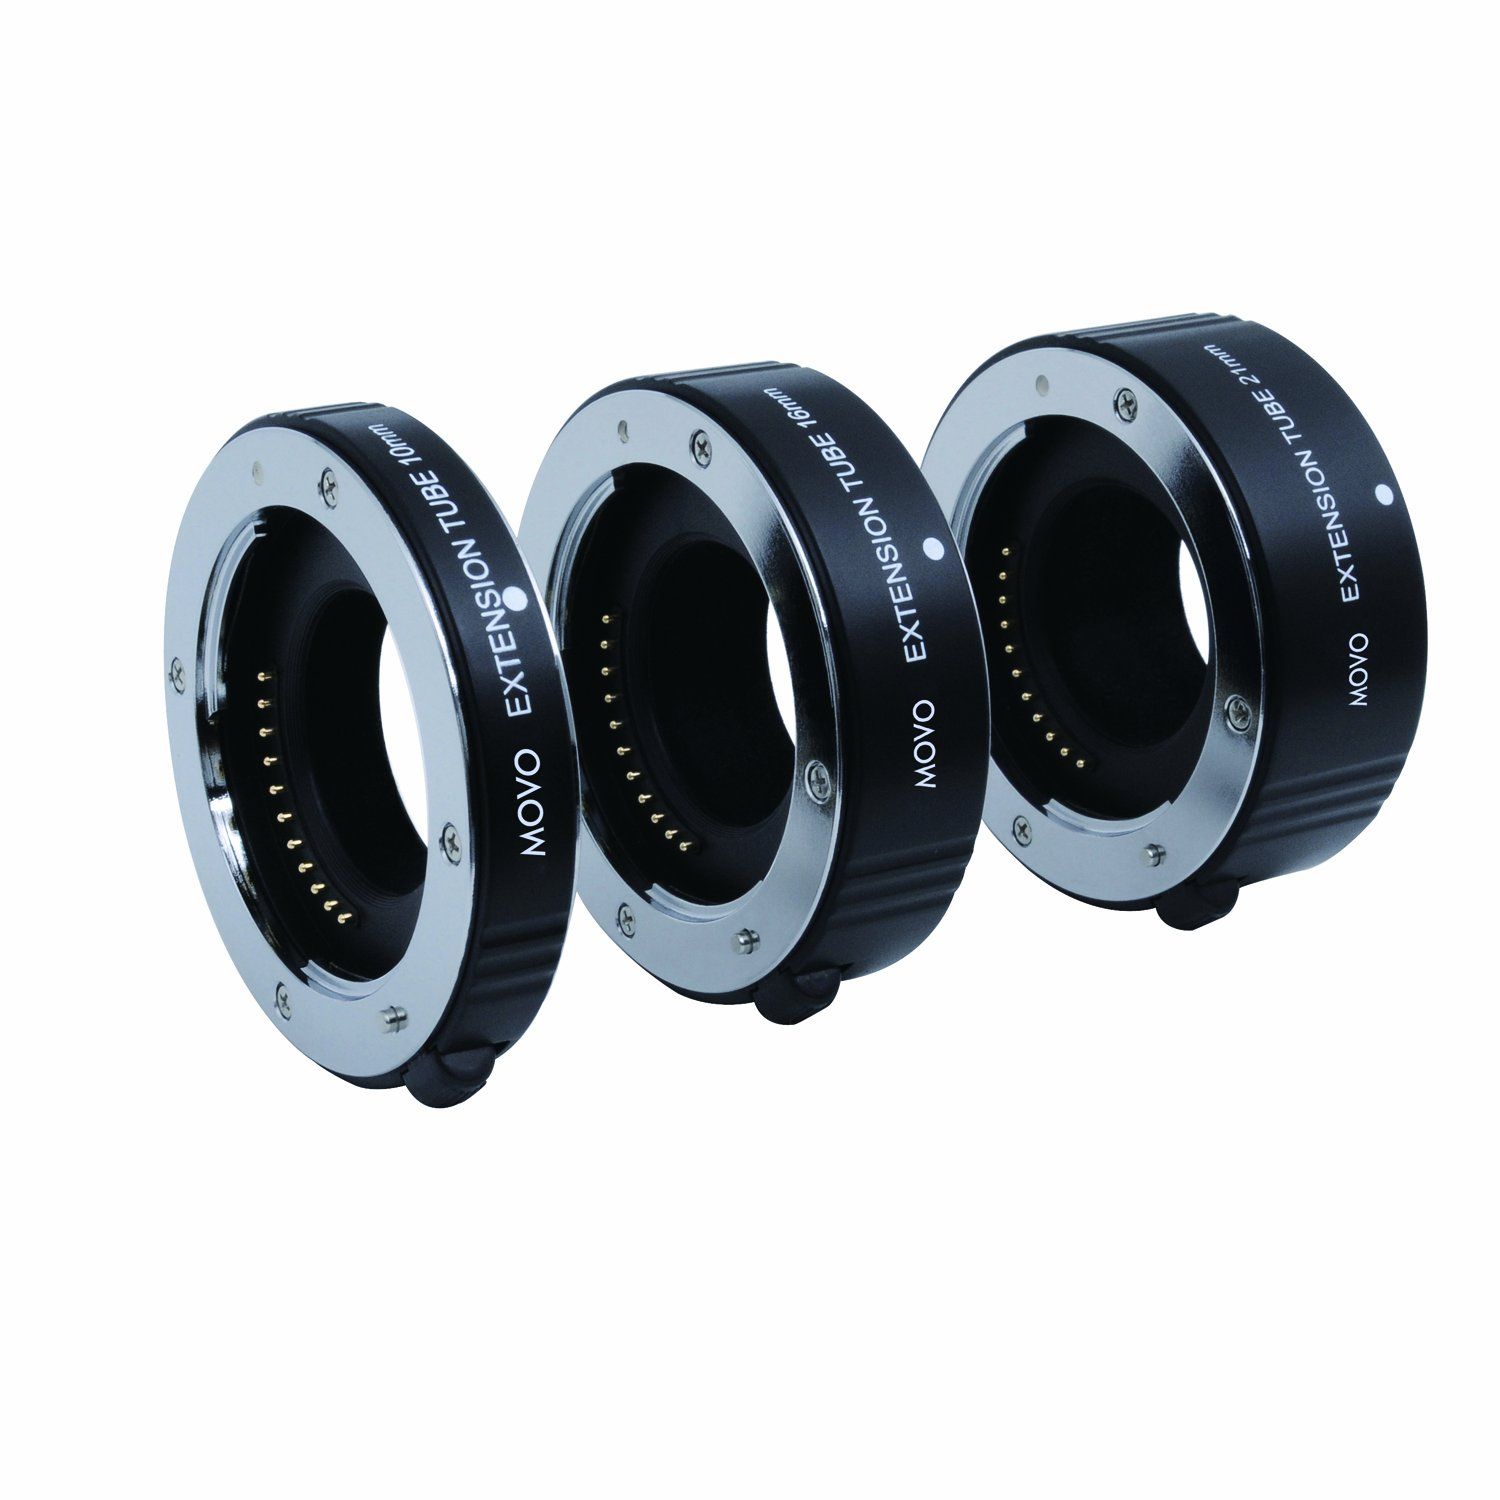 Movo Photo AF Macro Extension Tube Set for Micro 4/3 Mount Mirrorless Camera System (Compatible with Olympus PEN, Panasonic Lumix, Blackmagic Cinema Camera) with 10mm, 16mm & 21mm Tubes by Movo